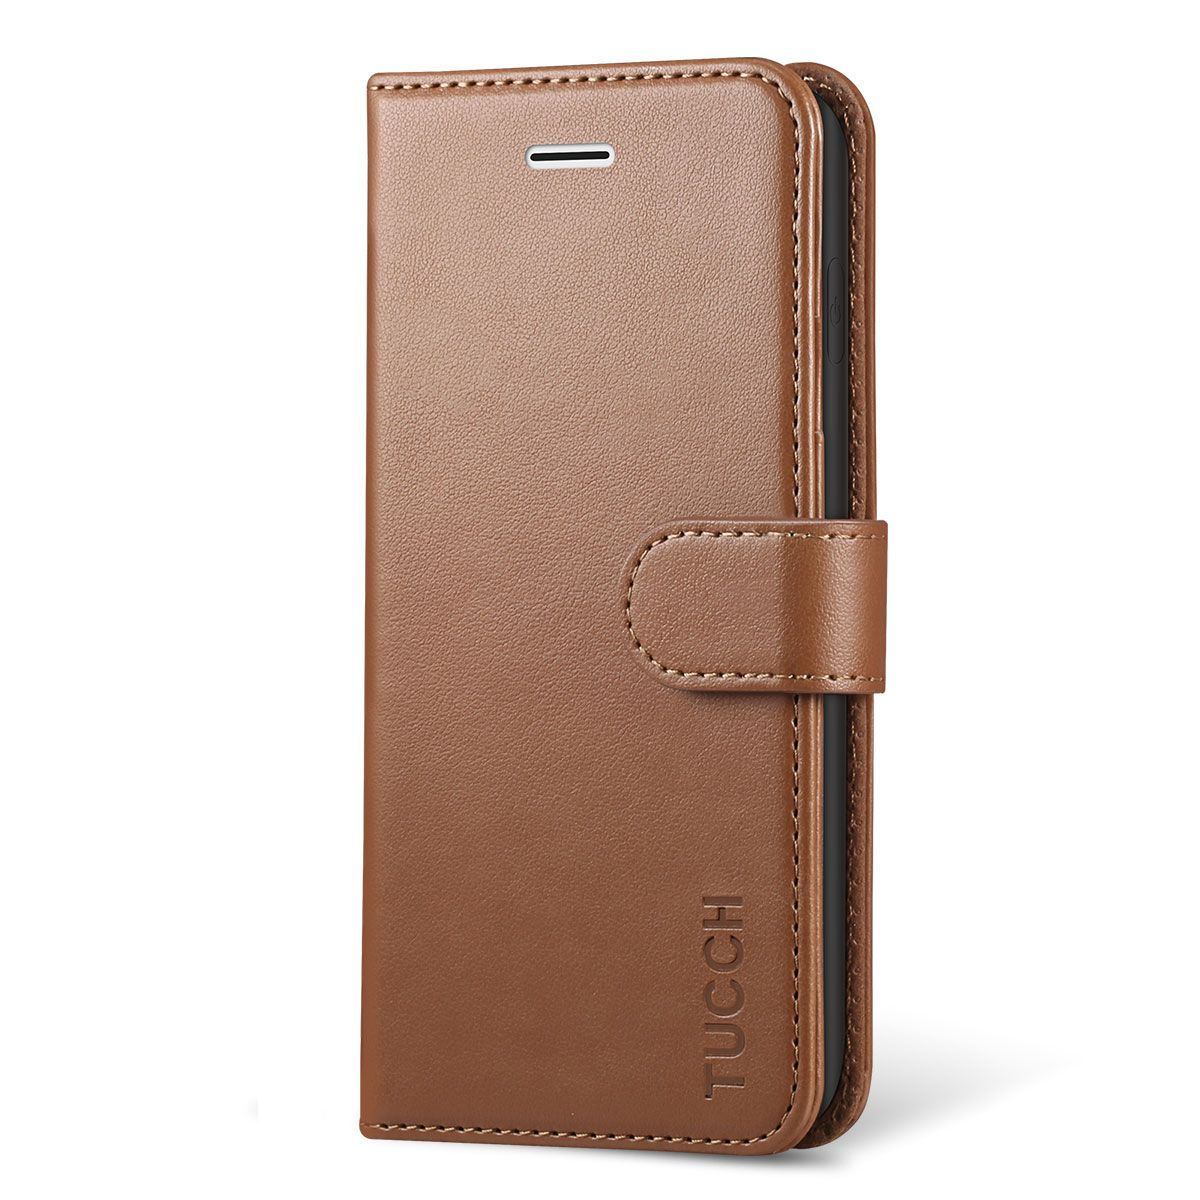 iphone 8 protective wallet case